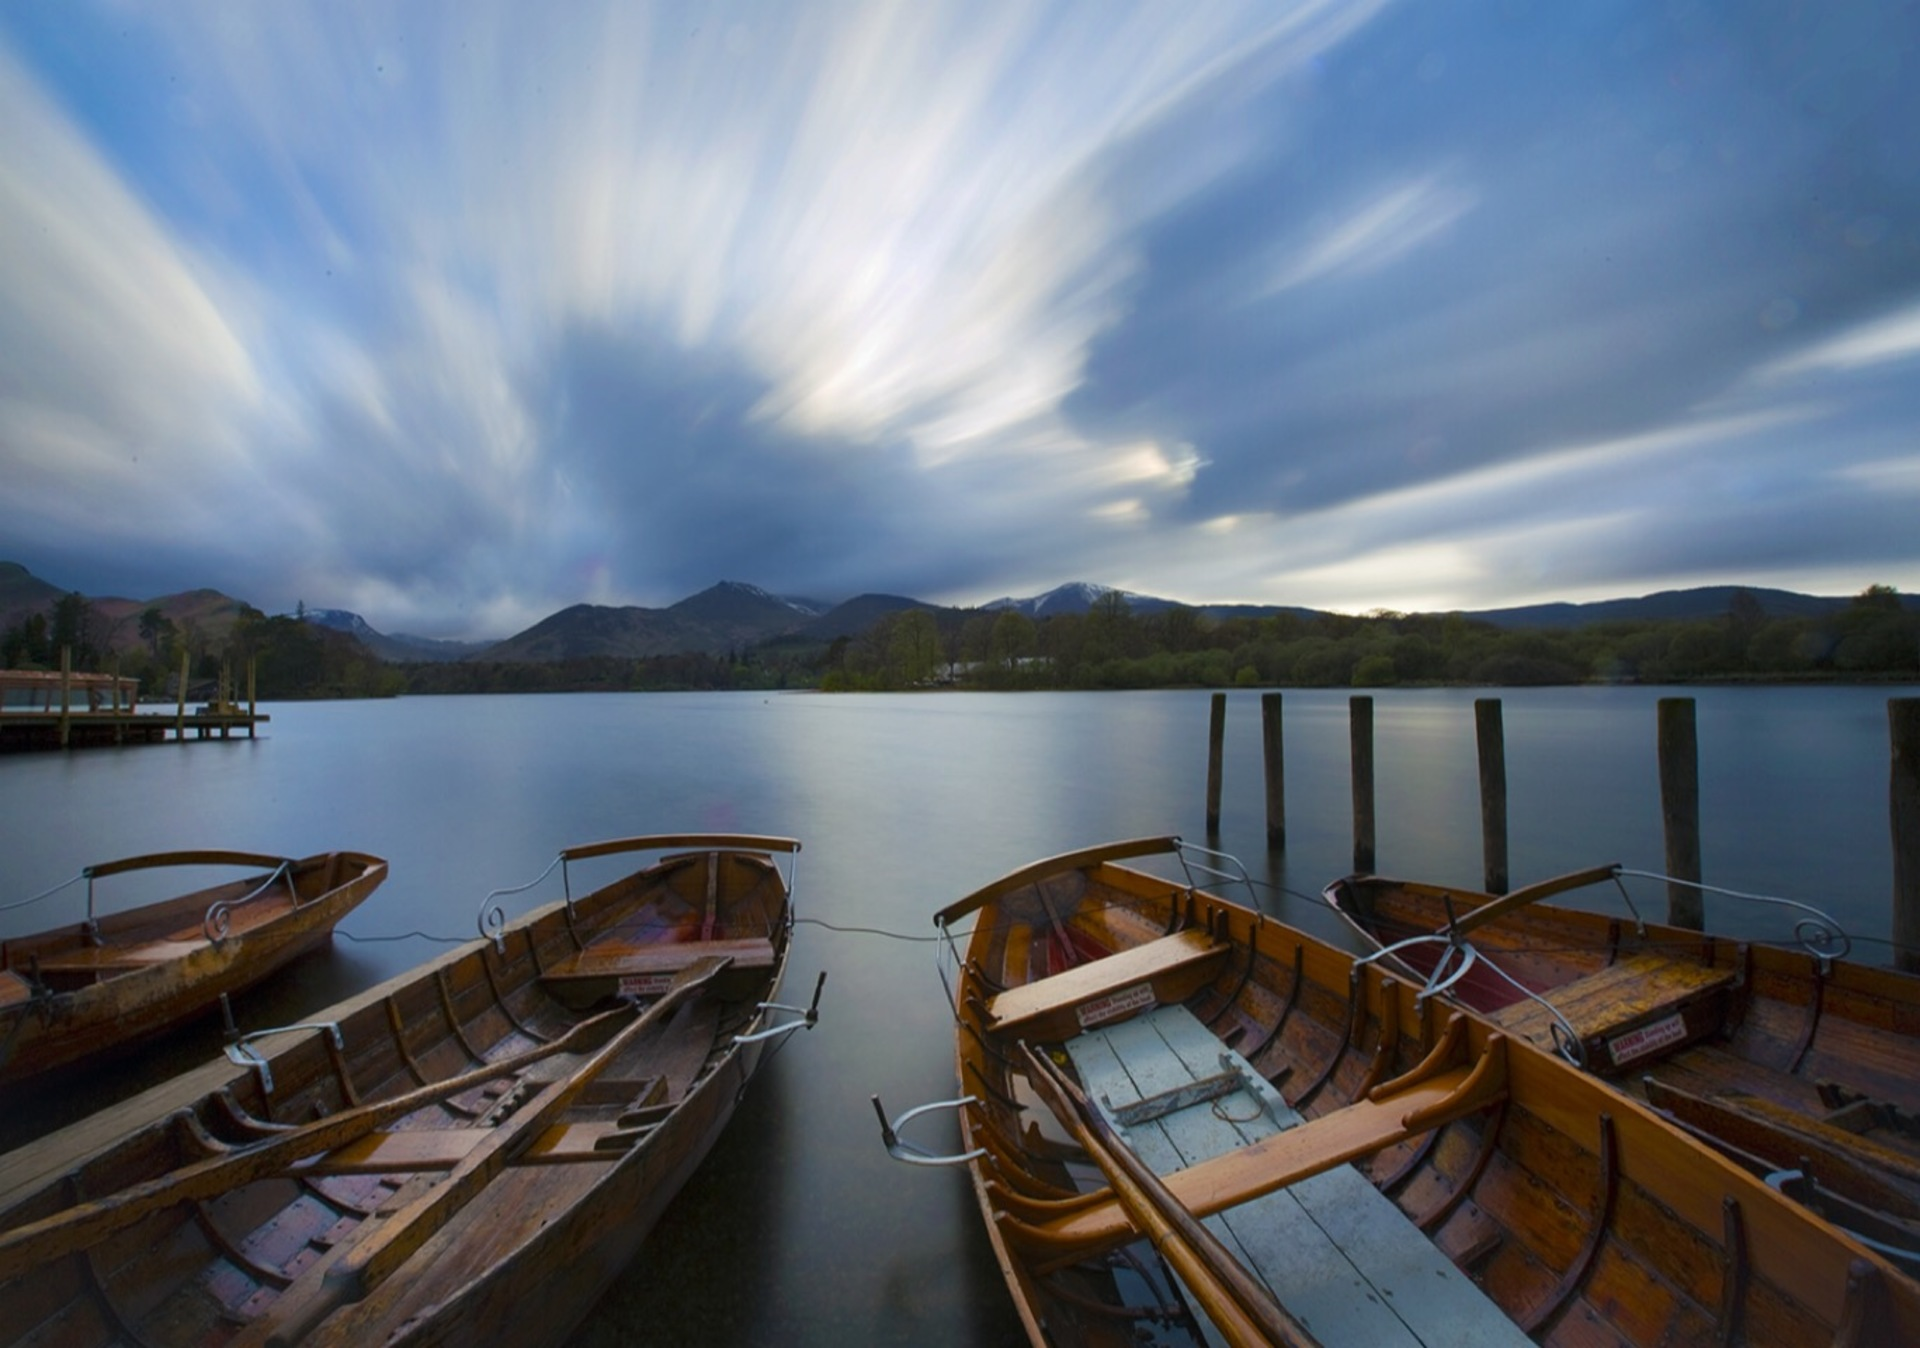 Boats at dusk. End of the day at Derwent Water, Lake District